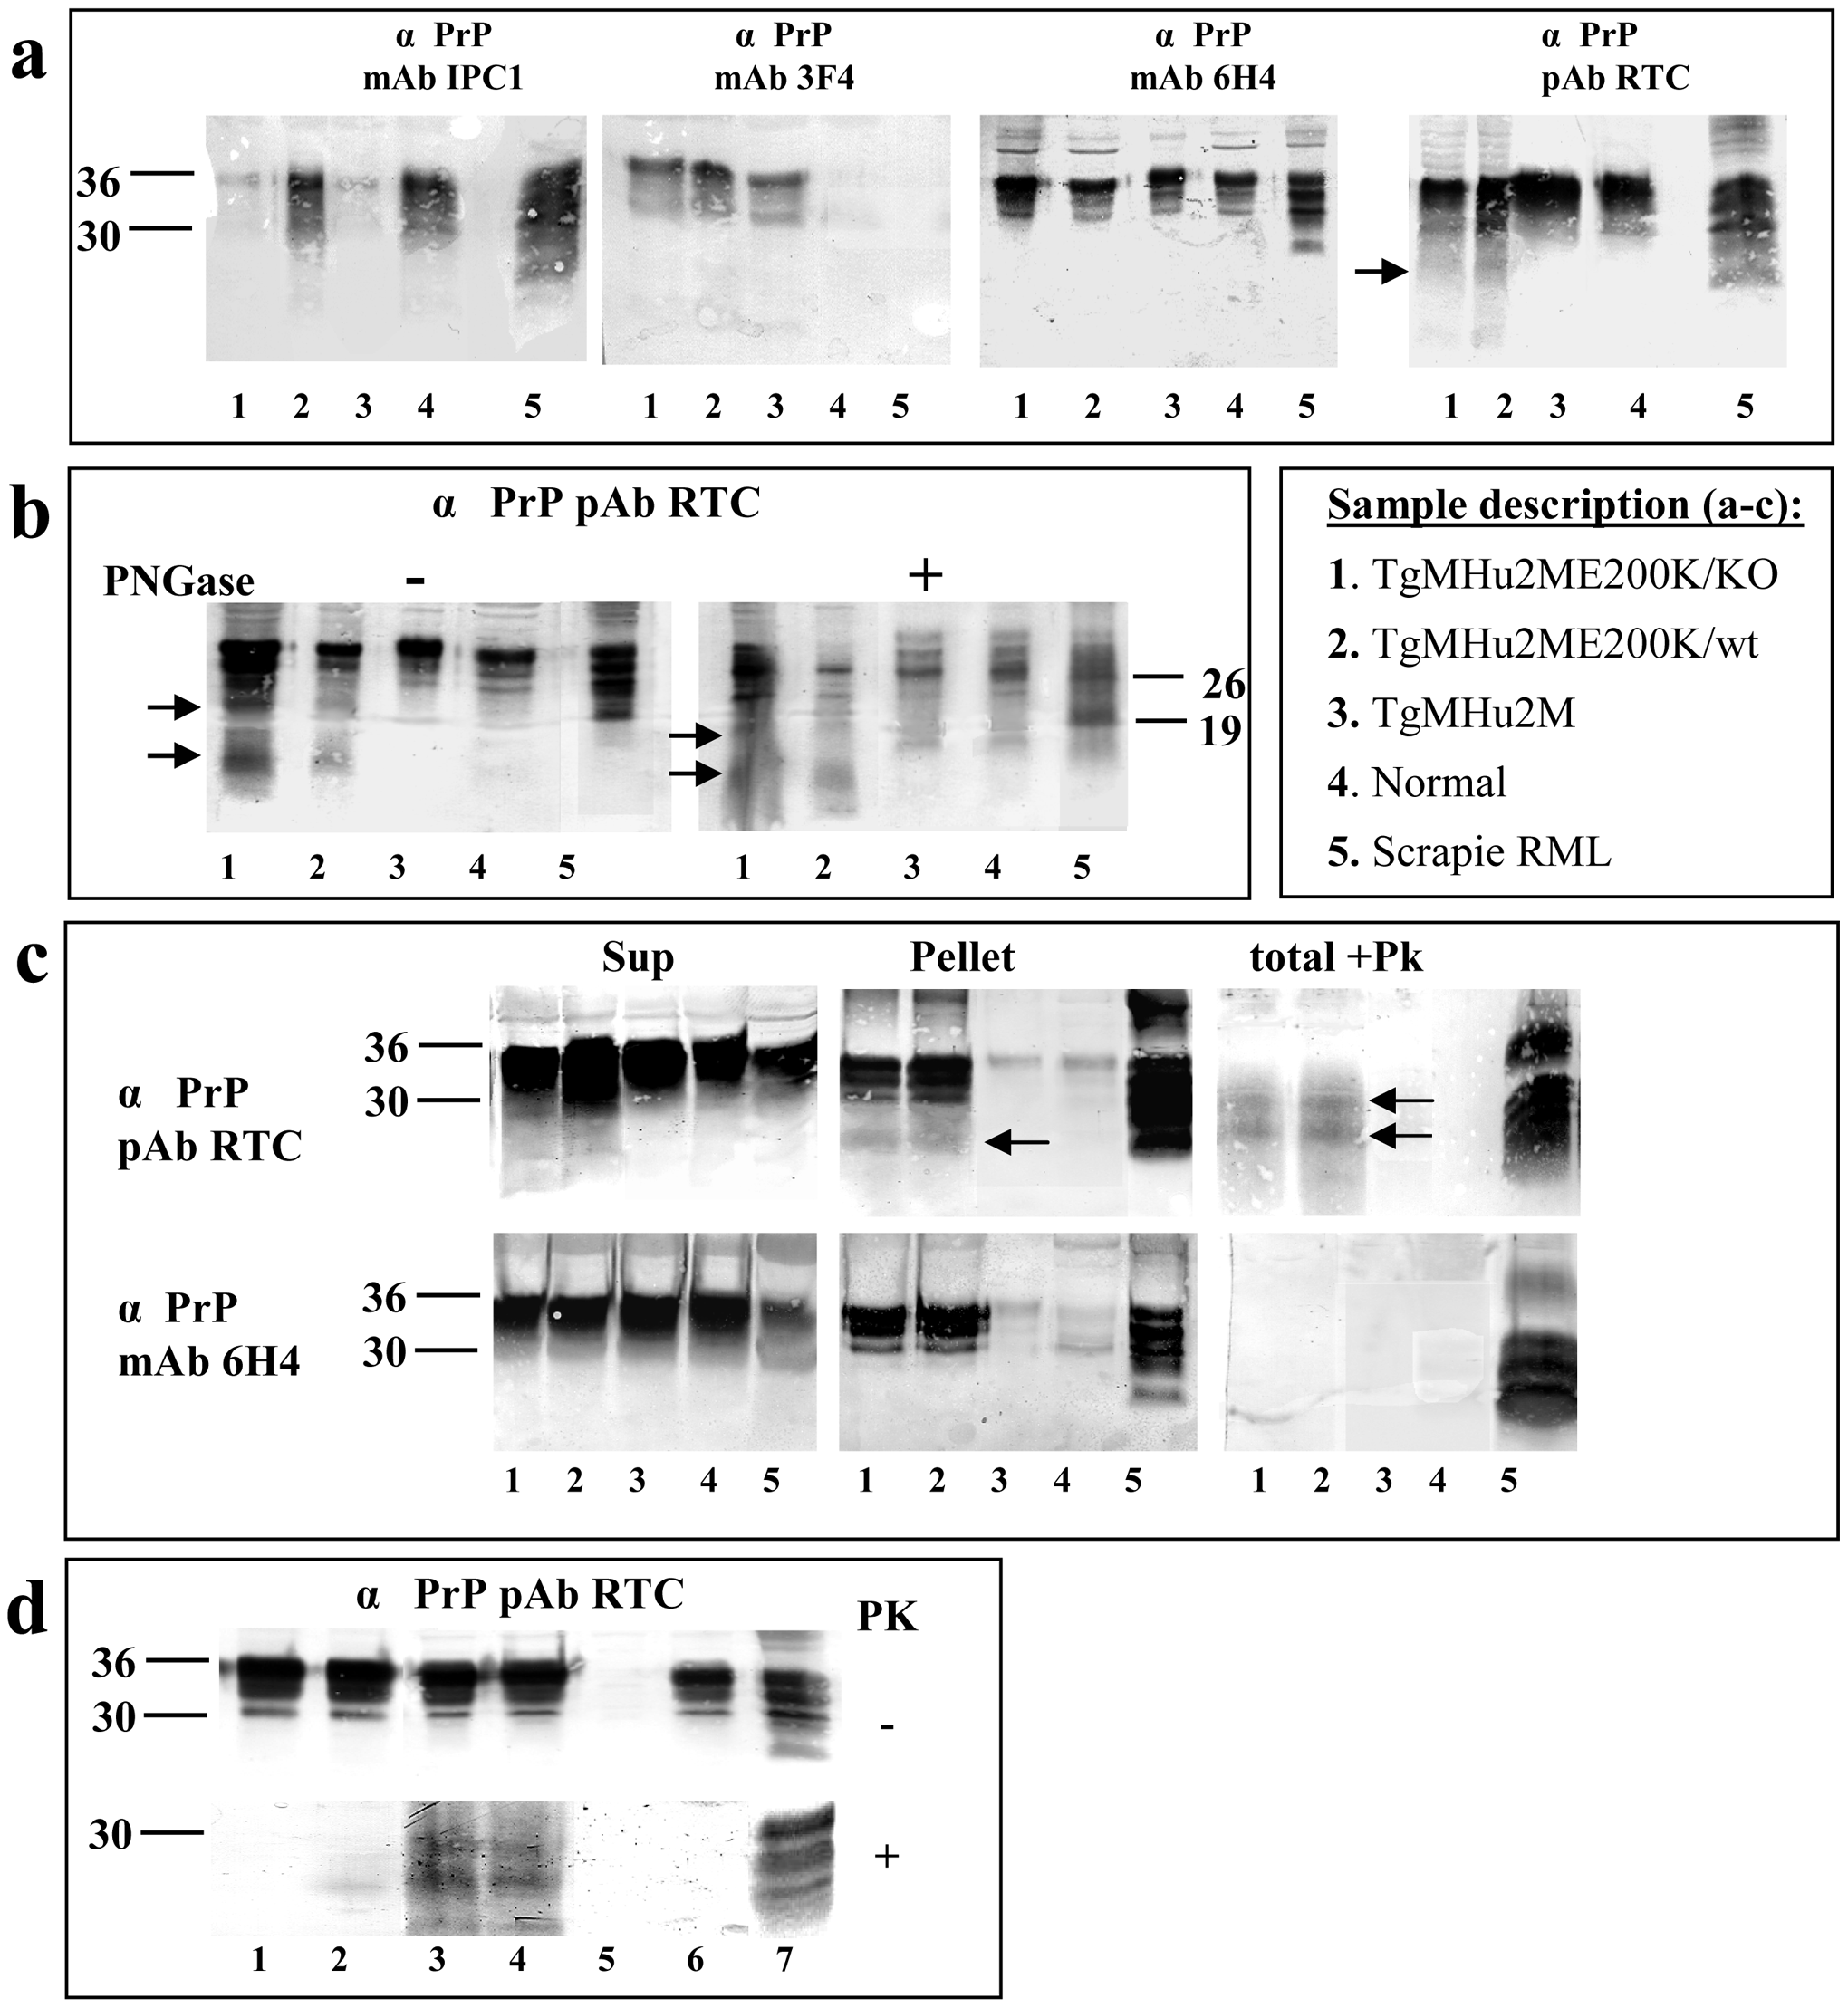 Biochemical Characterization of PrP in TgMHu2ME199K mice.